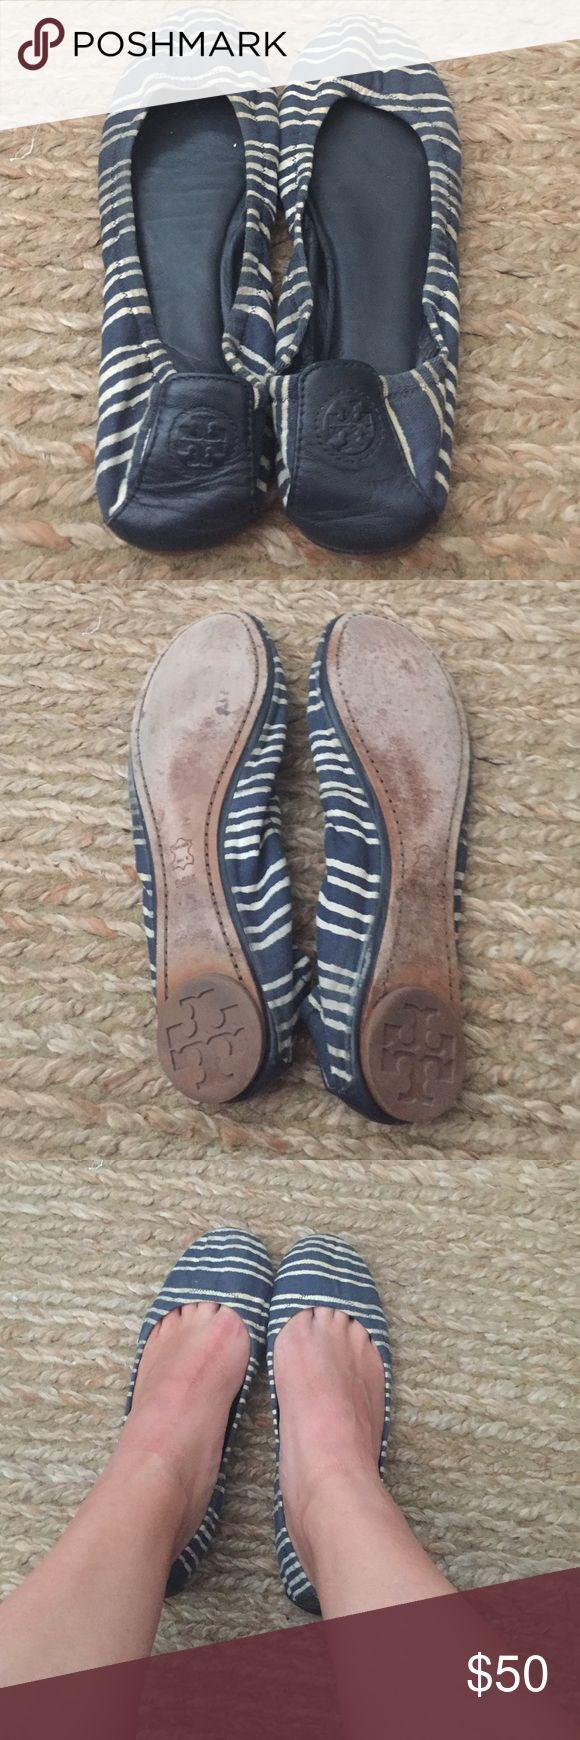 Tory burch blue and white flats Linen type fabric with leather backing and TB logo on heel. Some discoloration on sides (see pics), not noticable while wearing though. Light and comfortable springy/summery flat! Tory Burch Shoes Flats & Loafers